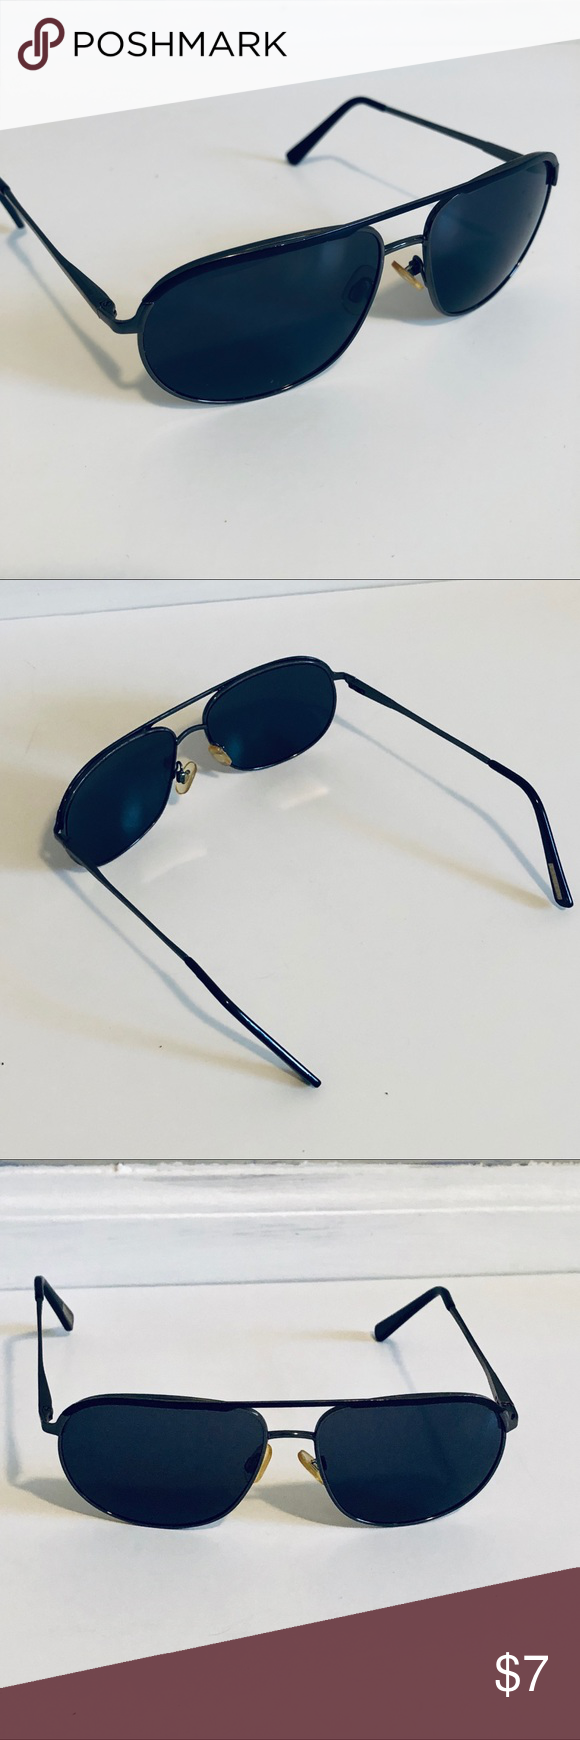 48e3a1e617a8 Black Aviator Sunglasses from Express Awesome aviators! - Dark lenses -  Charcoal rim - A little loose but can tighten if you prefer that fit - A  bit more ...